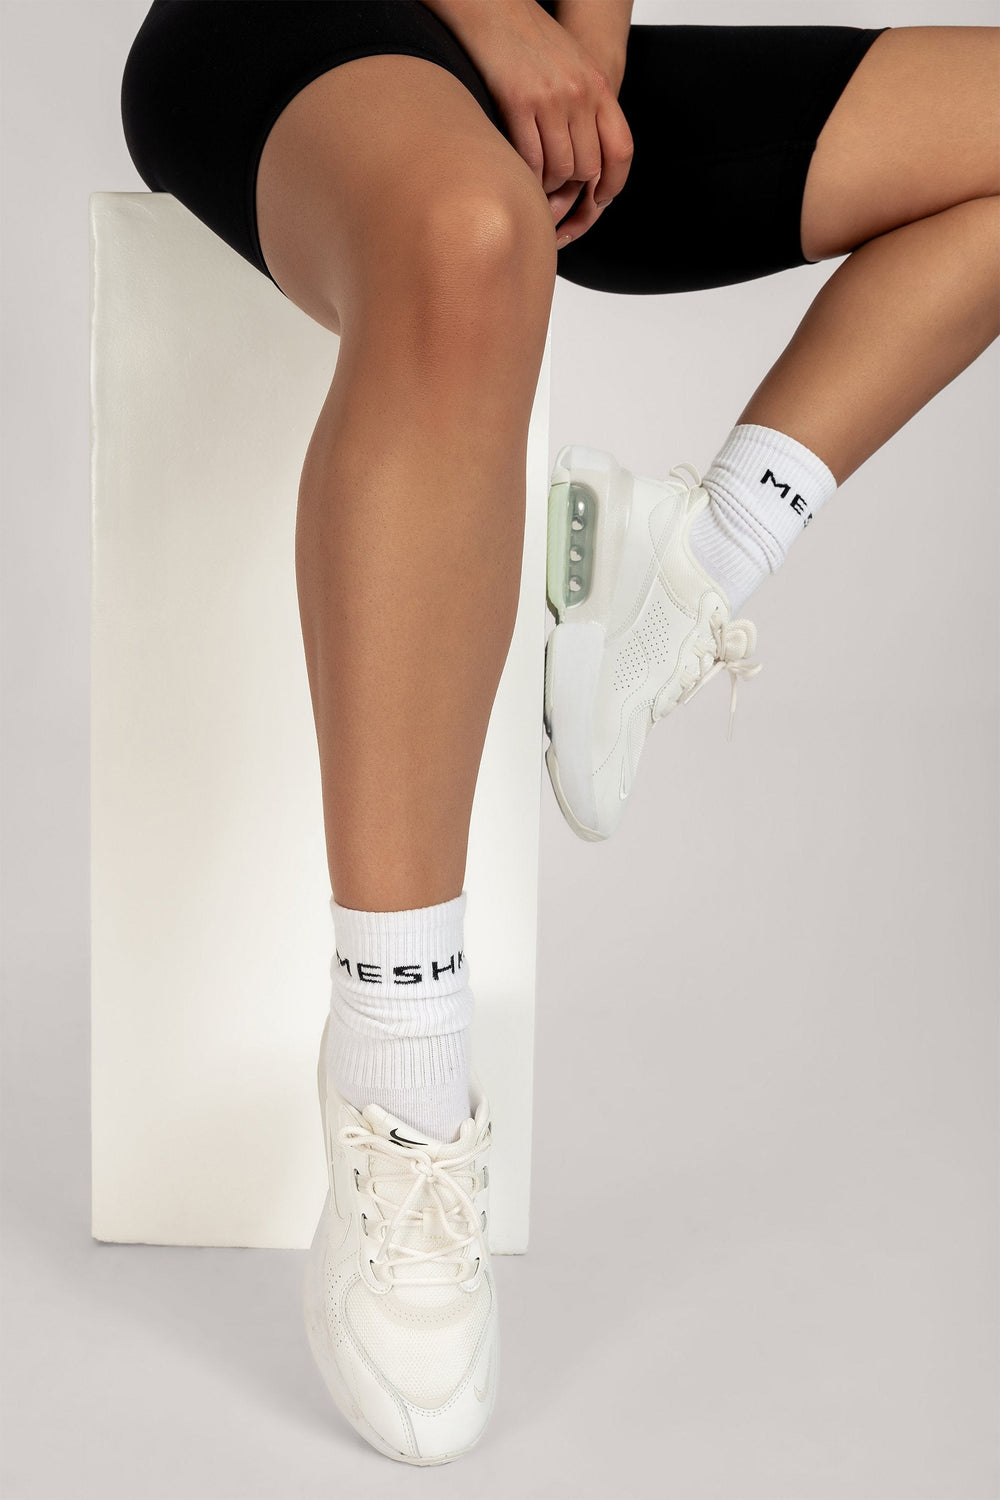 Meshki Branded Socks - White - MESHKI ?id=16083483230283